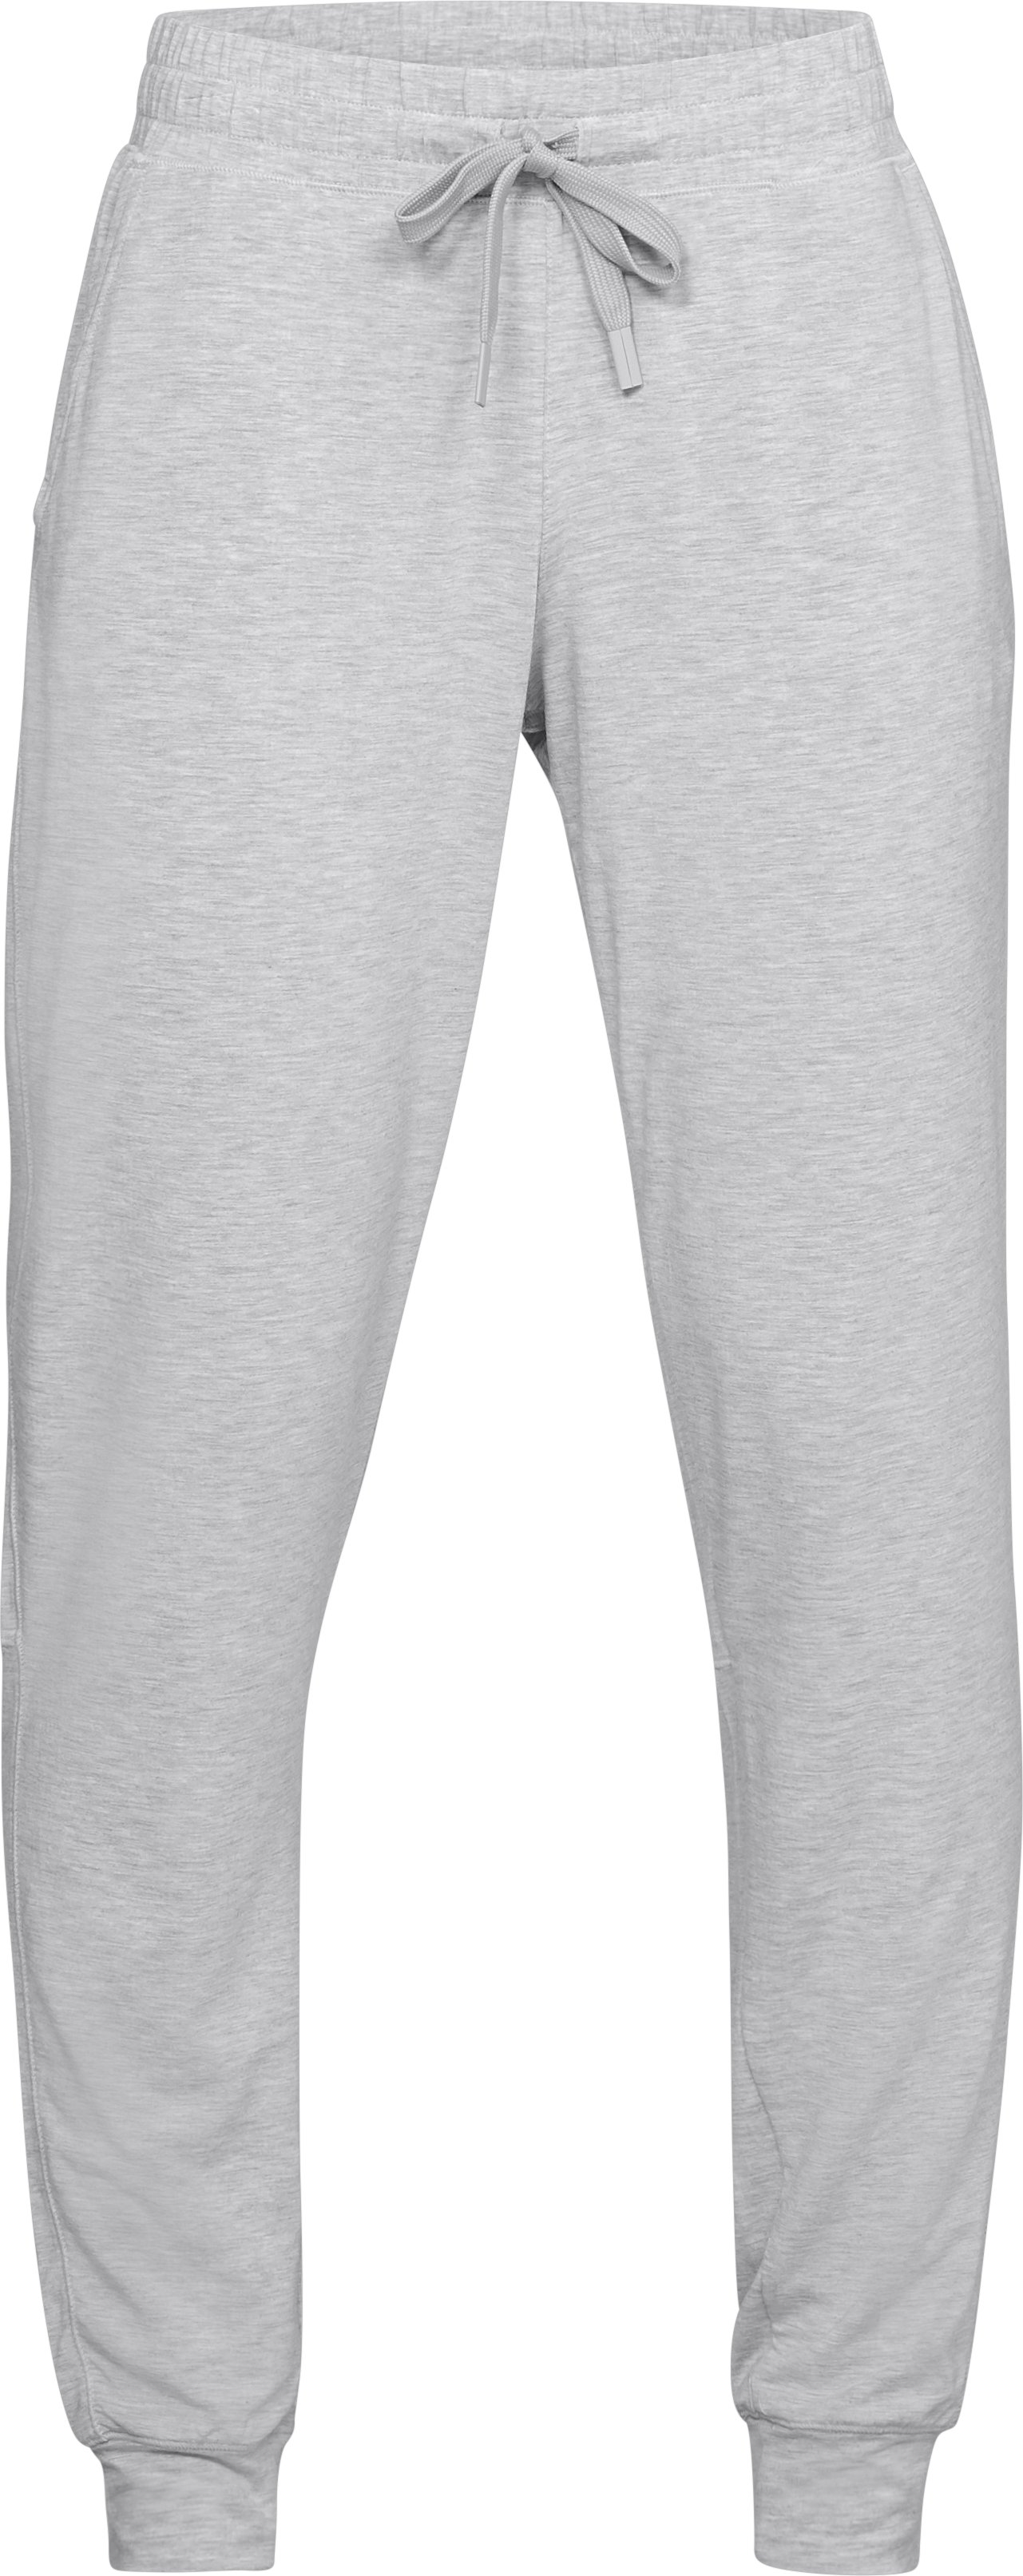 Women's Athlete Recovery Sleepwear™ Ultra Comfort Pants, ALUMINUM MEDIUM HEATHER,